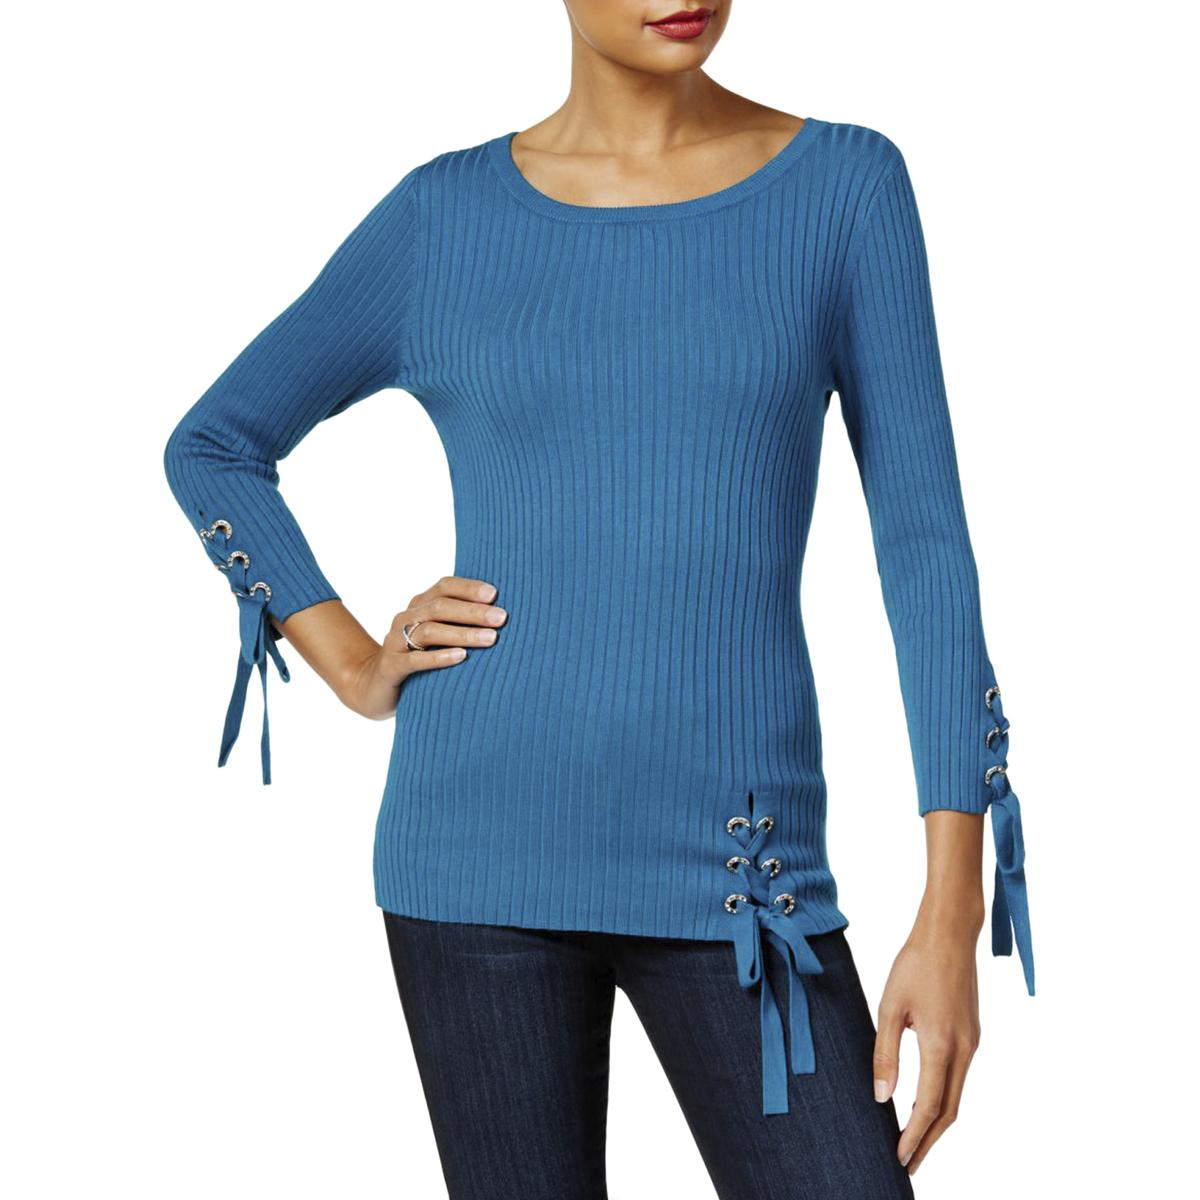 30adc8e418 Details about INC Womens Ribbed Lace up Long Sleeve Pullover Sweater Top  BHFO 1478